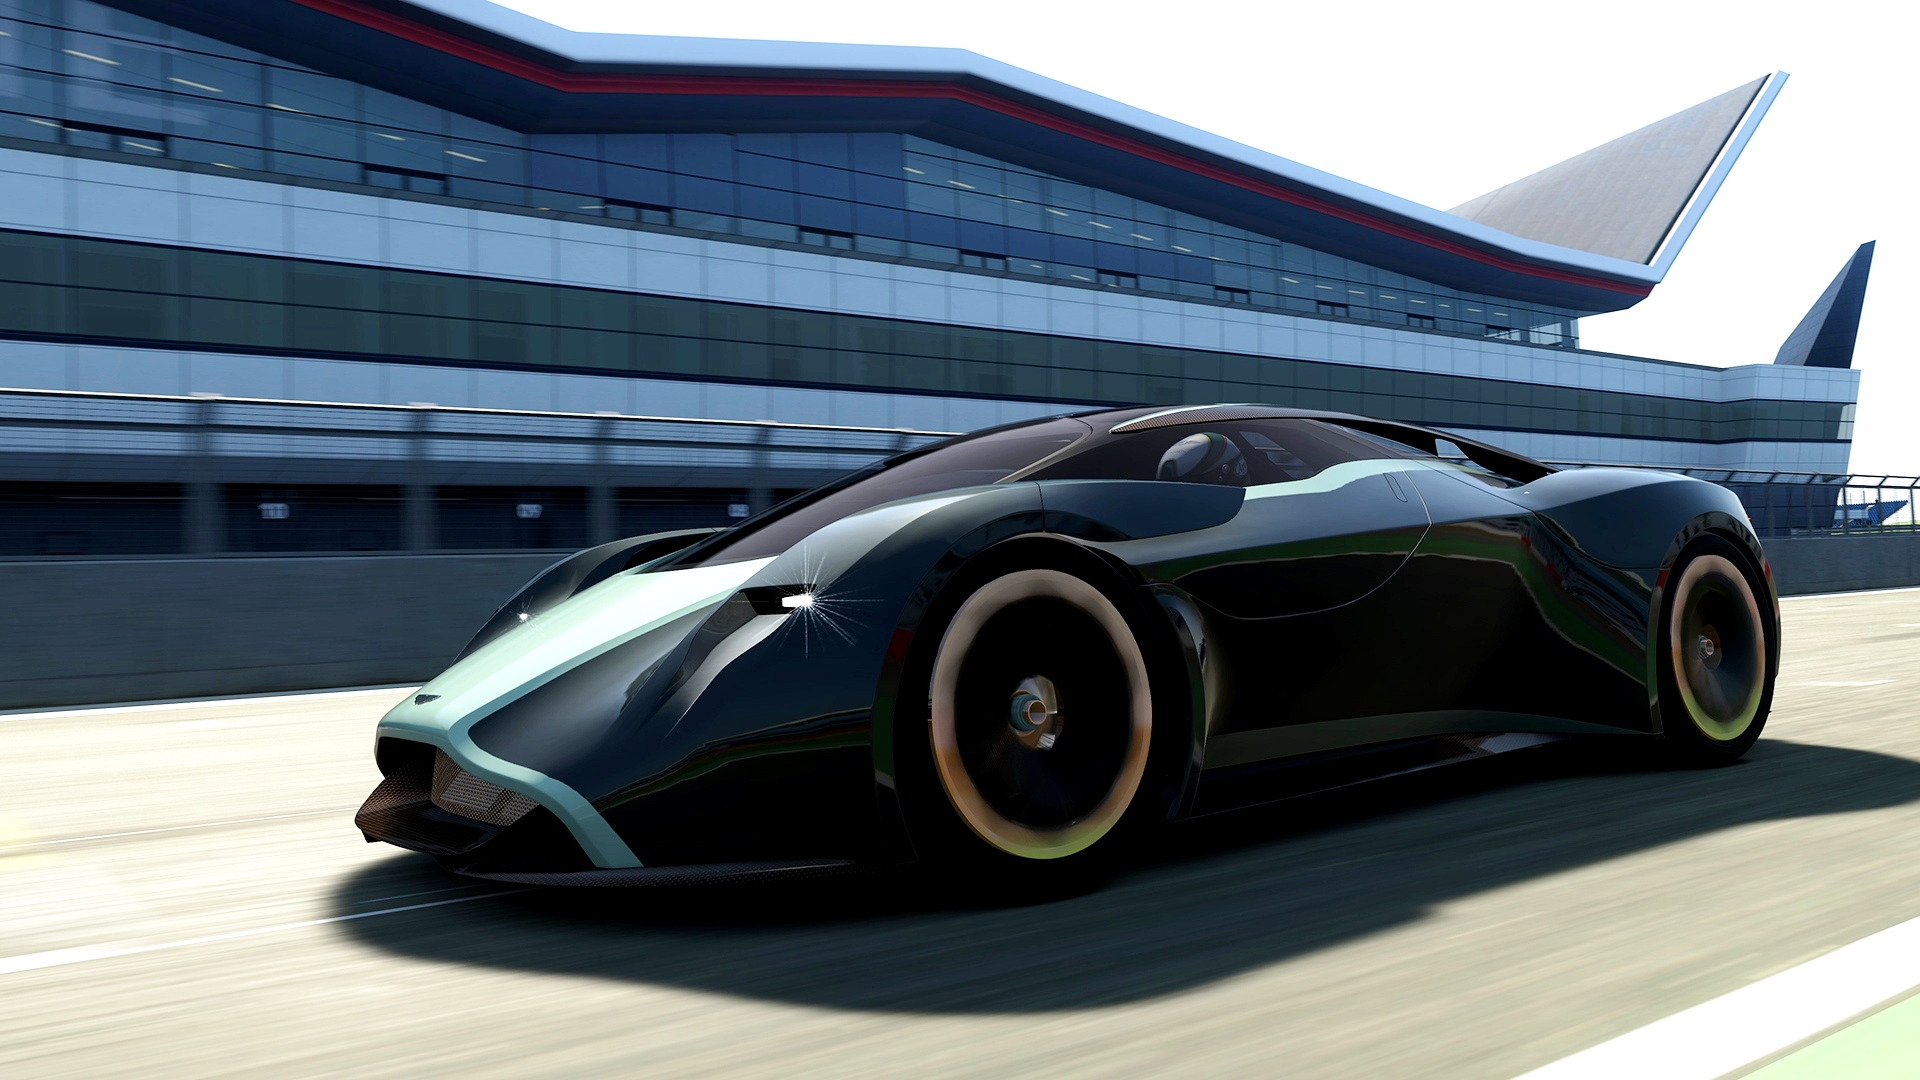 aston martin dp 100 vision gran turismo is mid engine hyper exotic. Black Bedroom Furniture Sets. Home Design Ideas